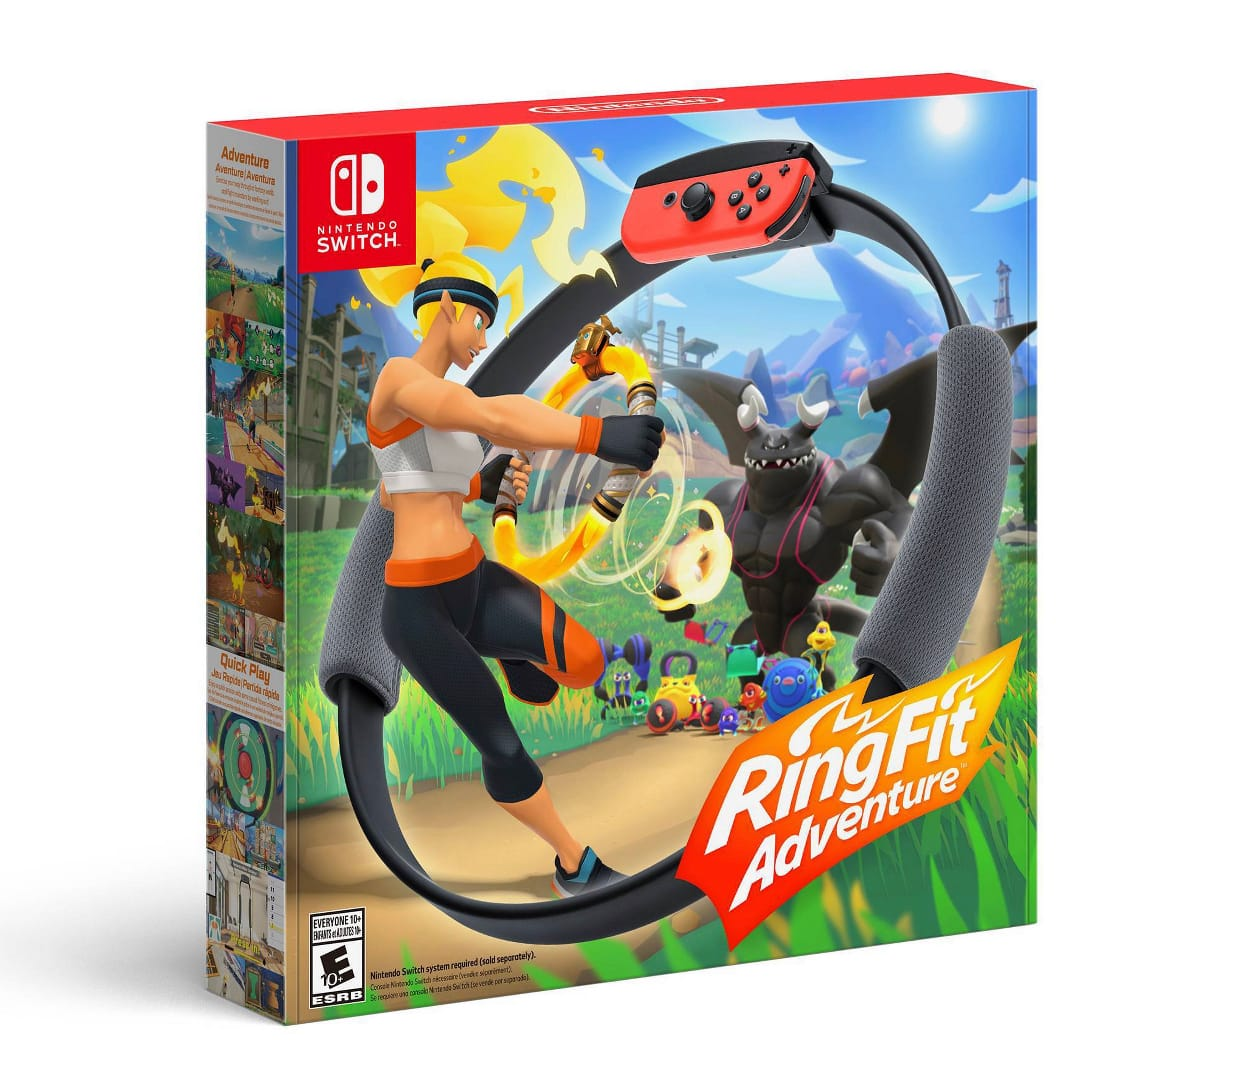 Ring Fit Adventure Nintendo Switch in Stock @ Target for shipping. $79.99 plus 5% off for Red Card